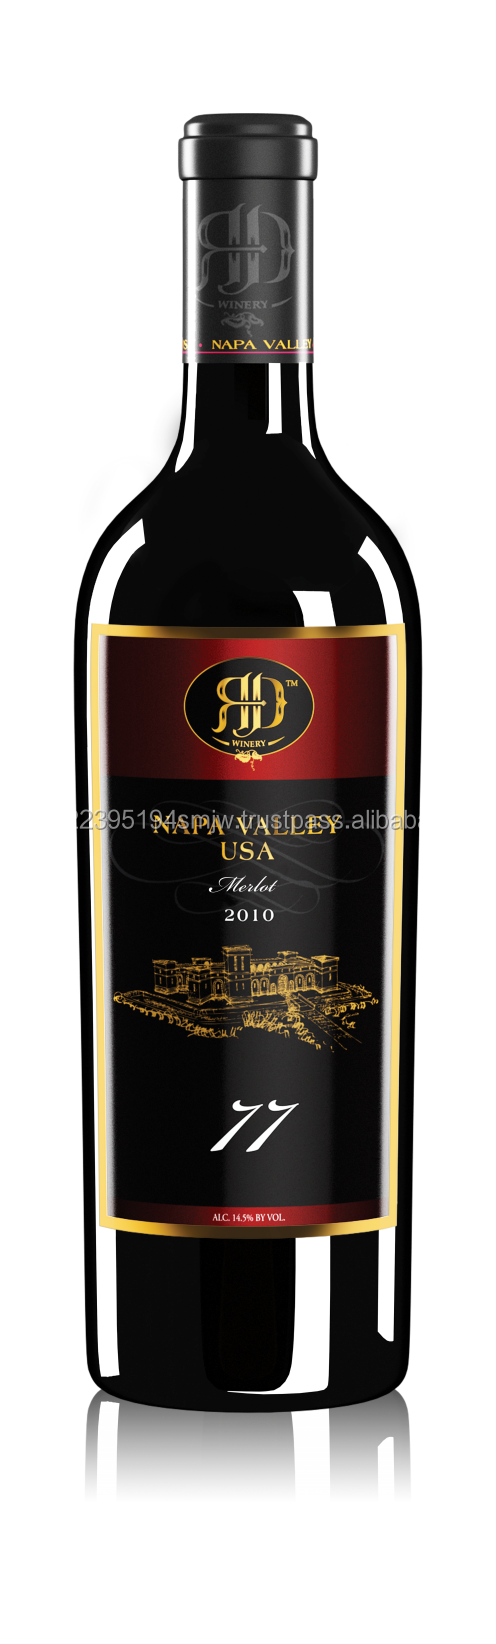 Red Wine 77 Merlot 2010- RD Winery Red Wine Product 230517